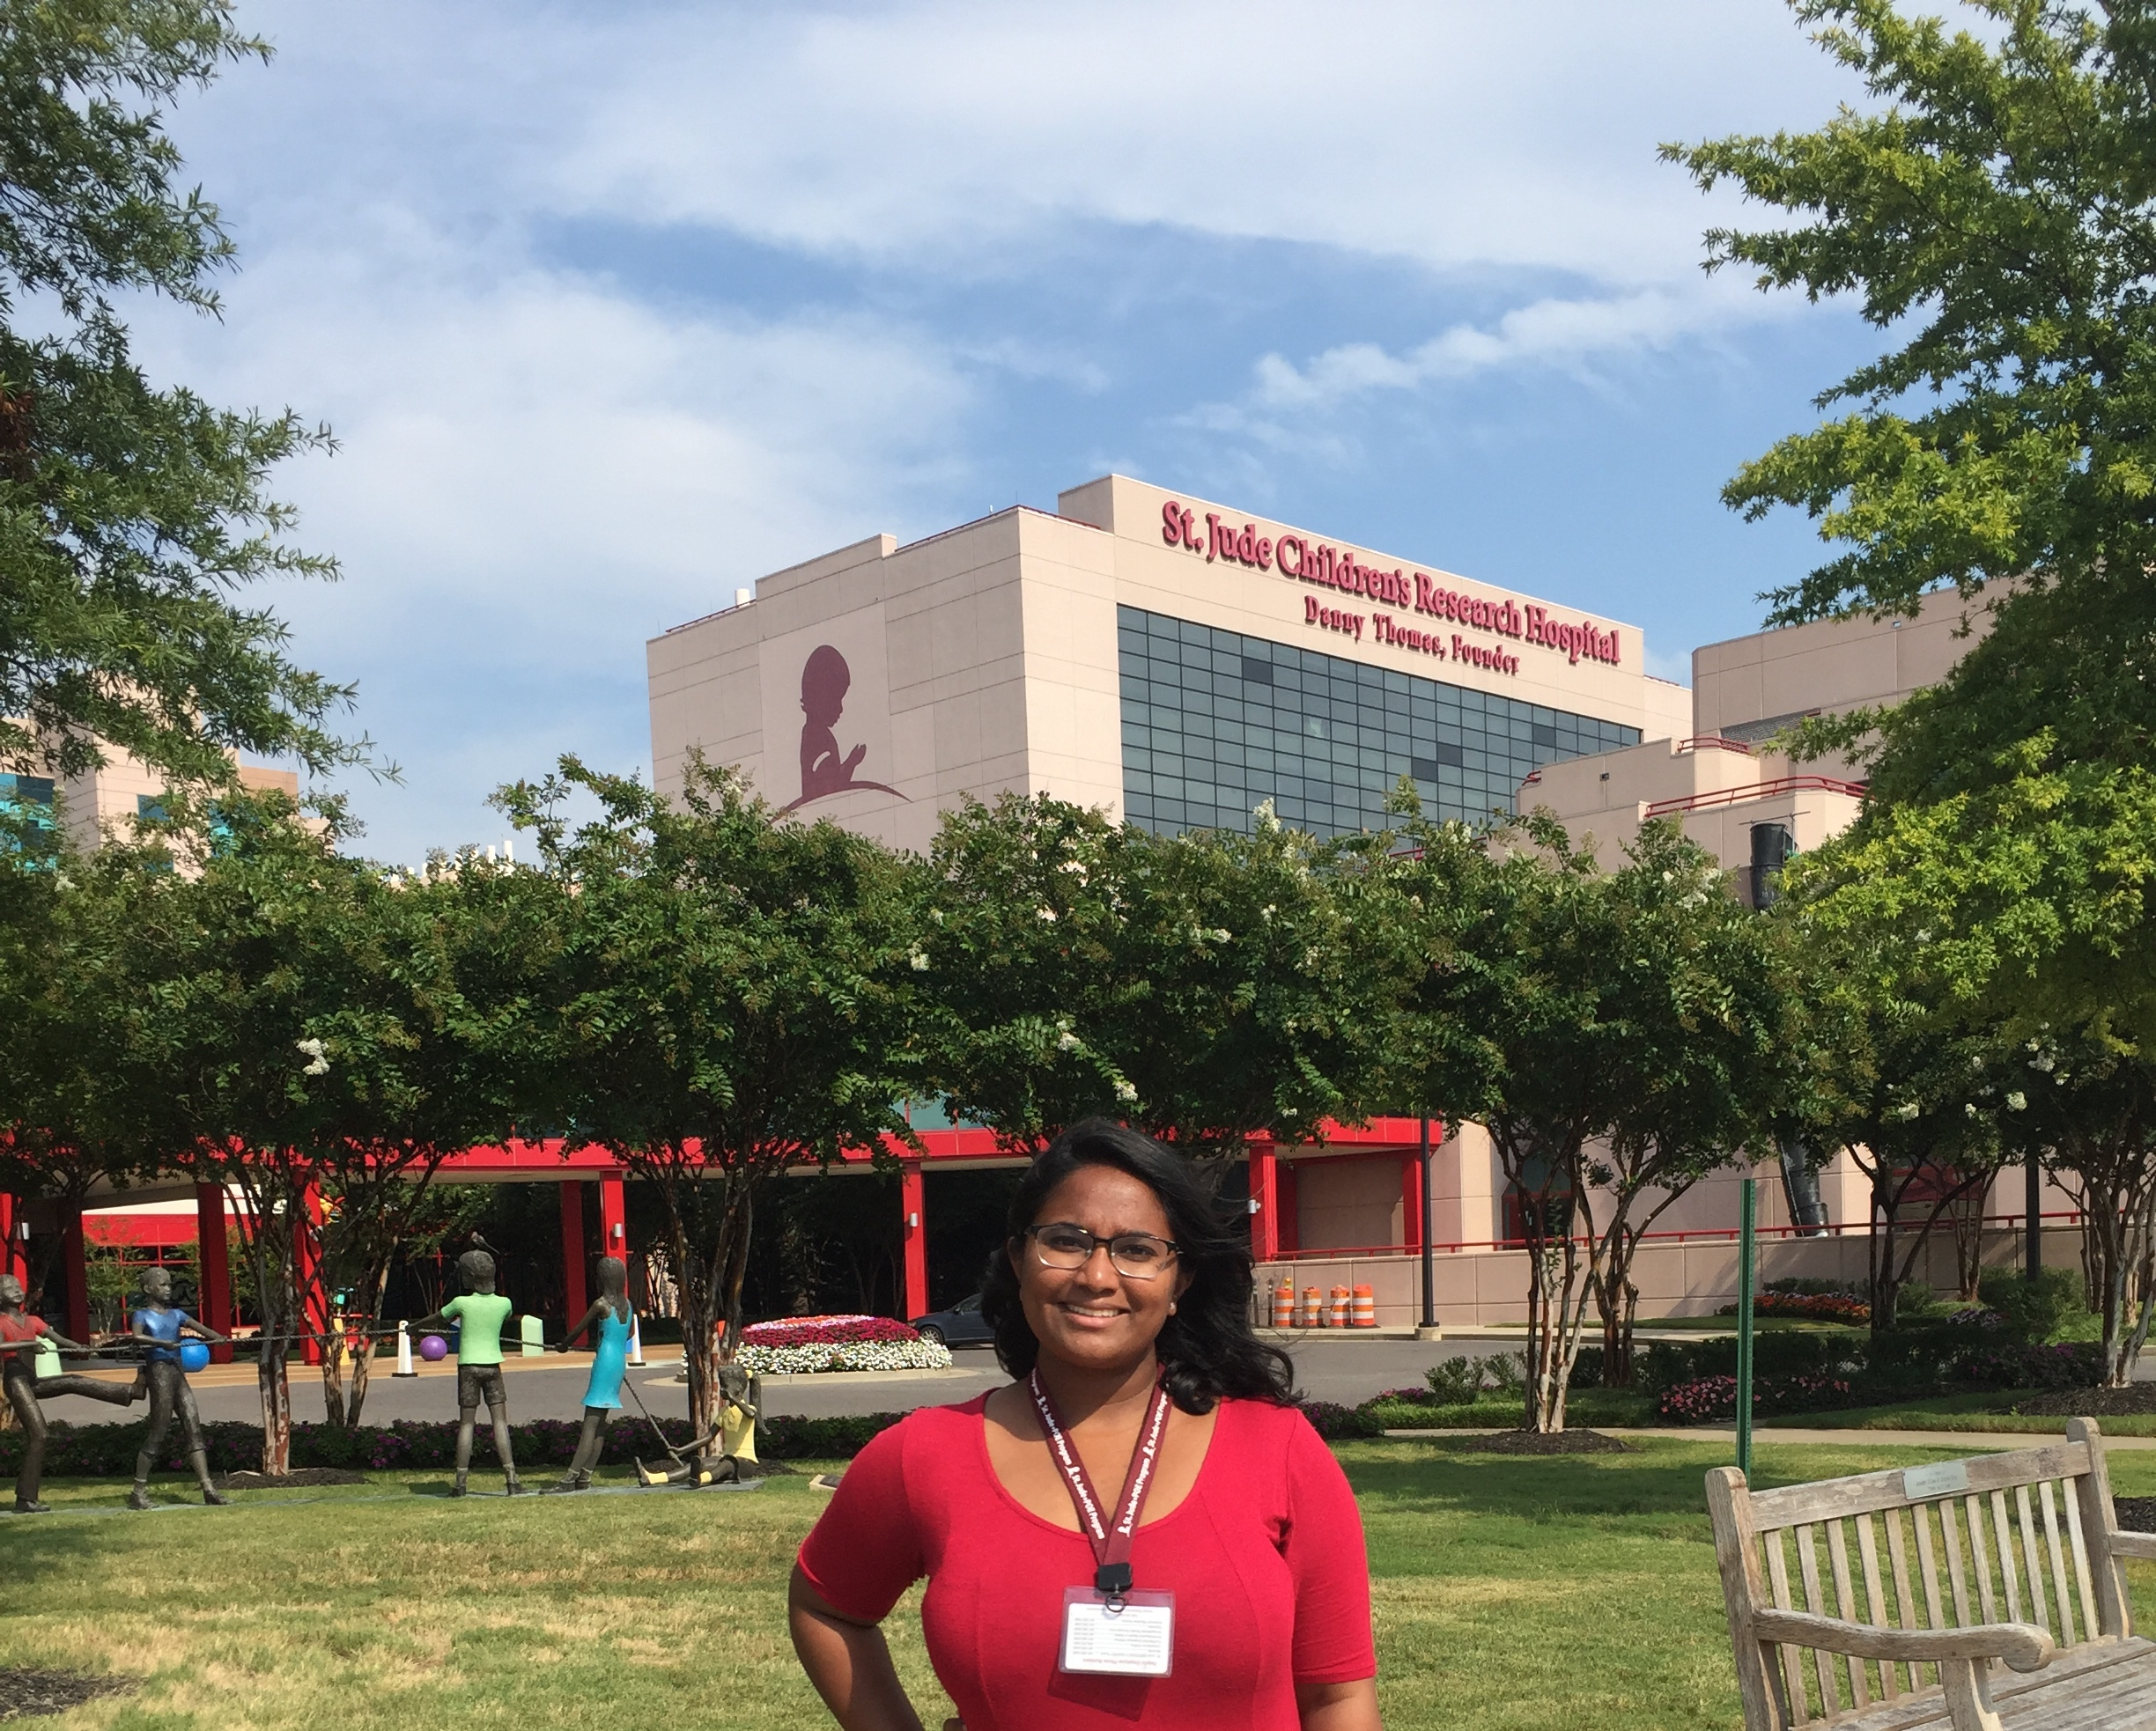 Erica spent a summer conducting cancer research at St. Jude Children's  Research Hospital in Memphis